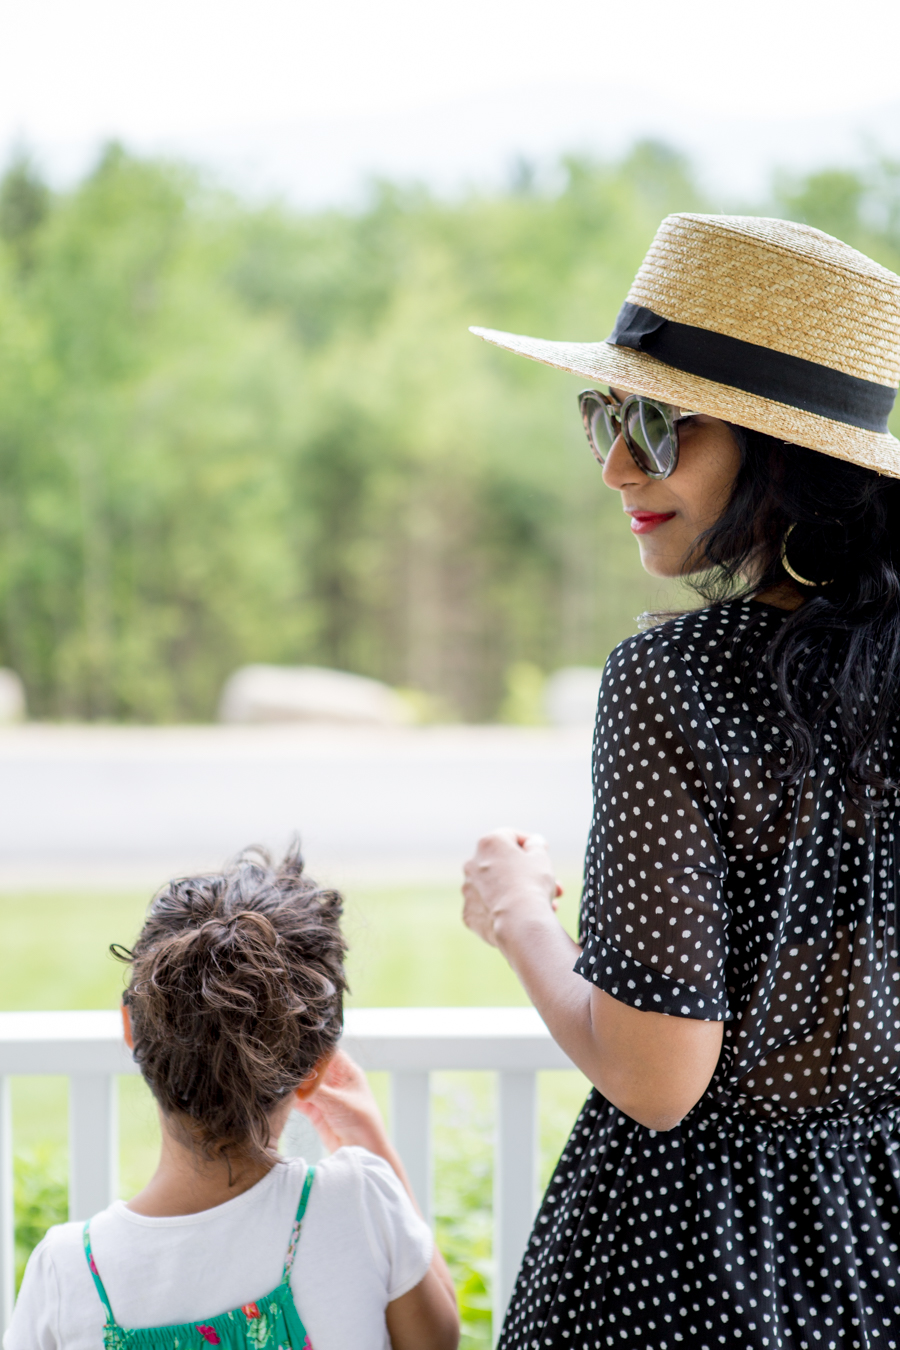 spring fashion, summer style, travel, new england getaways, petite fashion, polka dots, maxi dress, targetstyle, whowhatwear, affordable style, feminine style, straw accesssories, family vacation